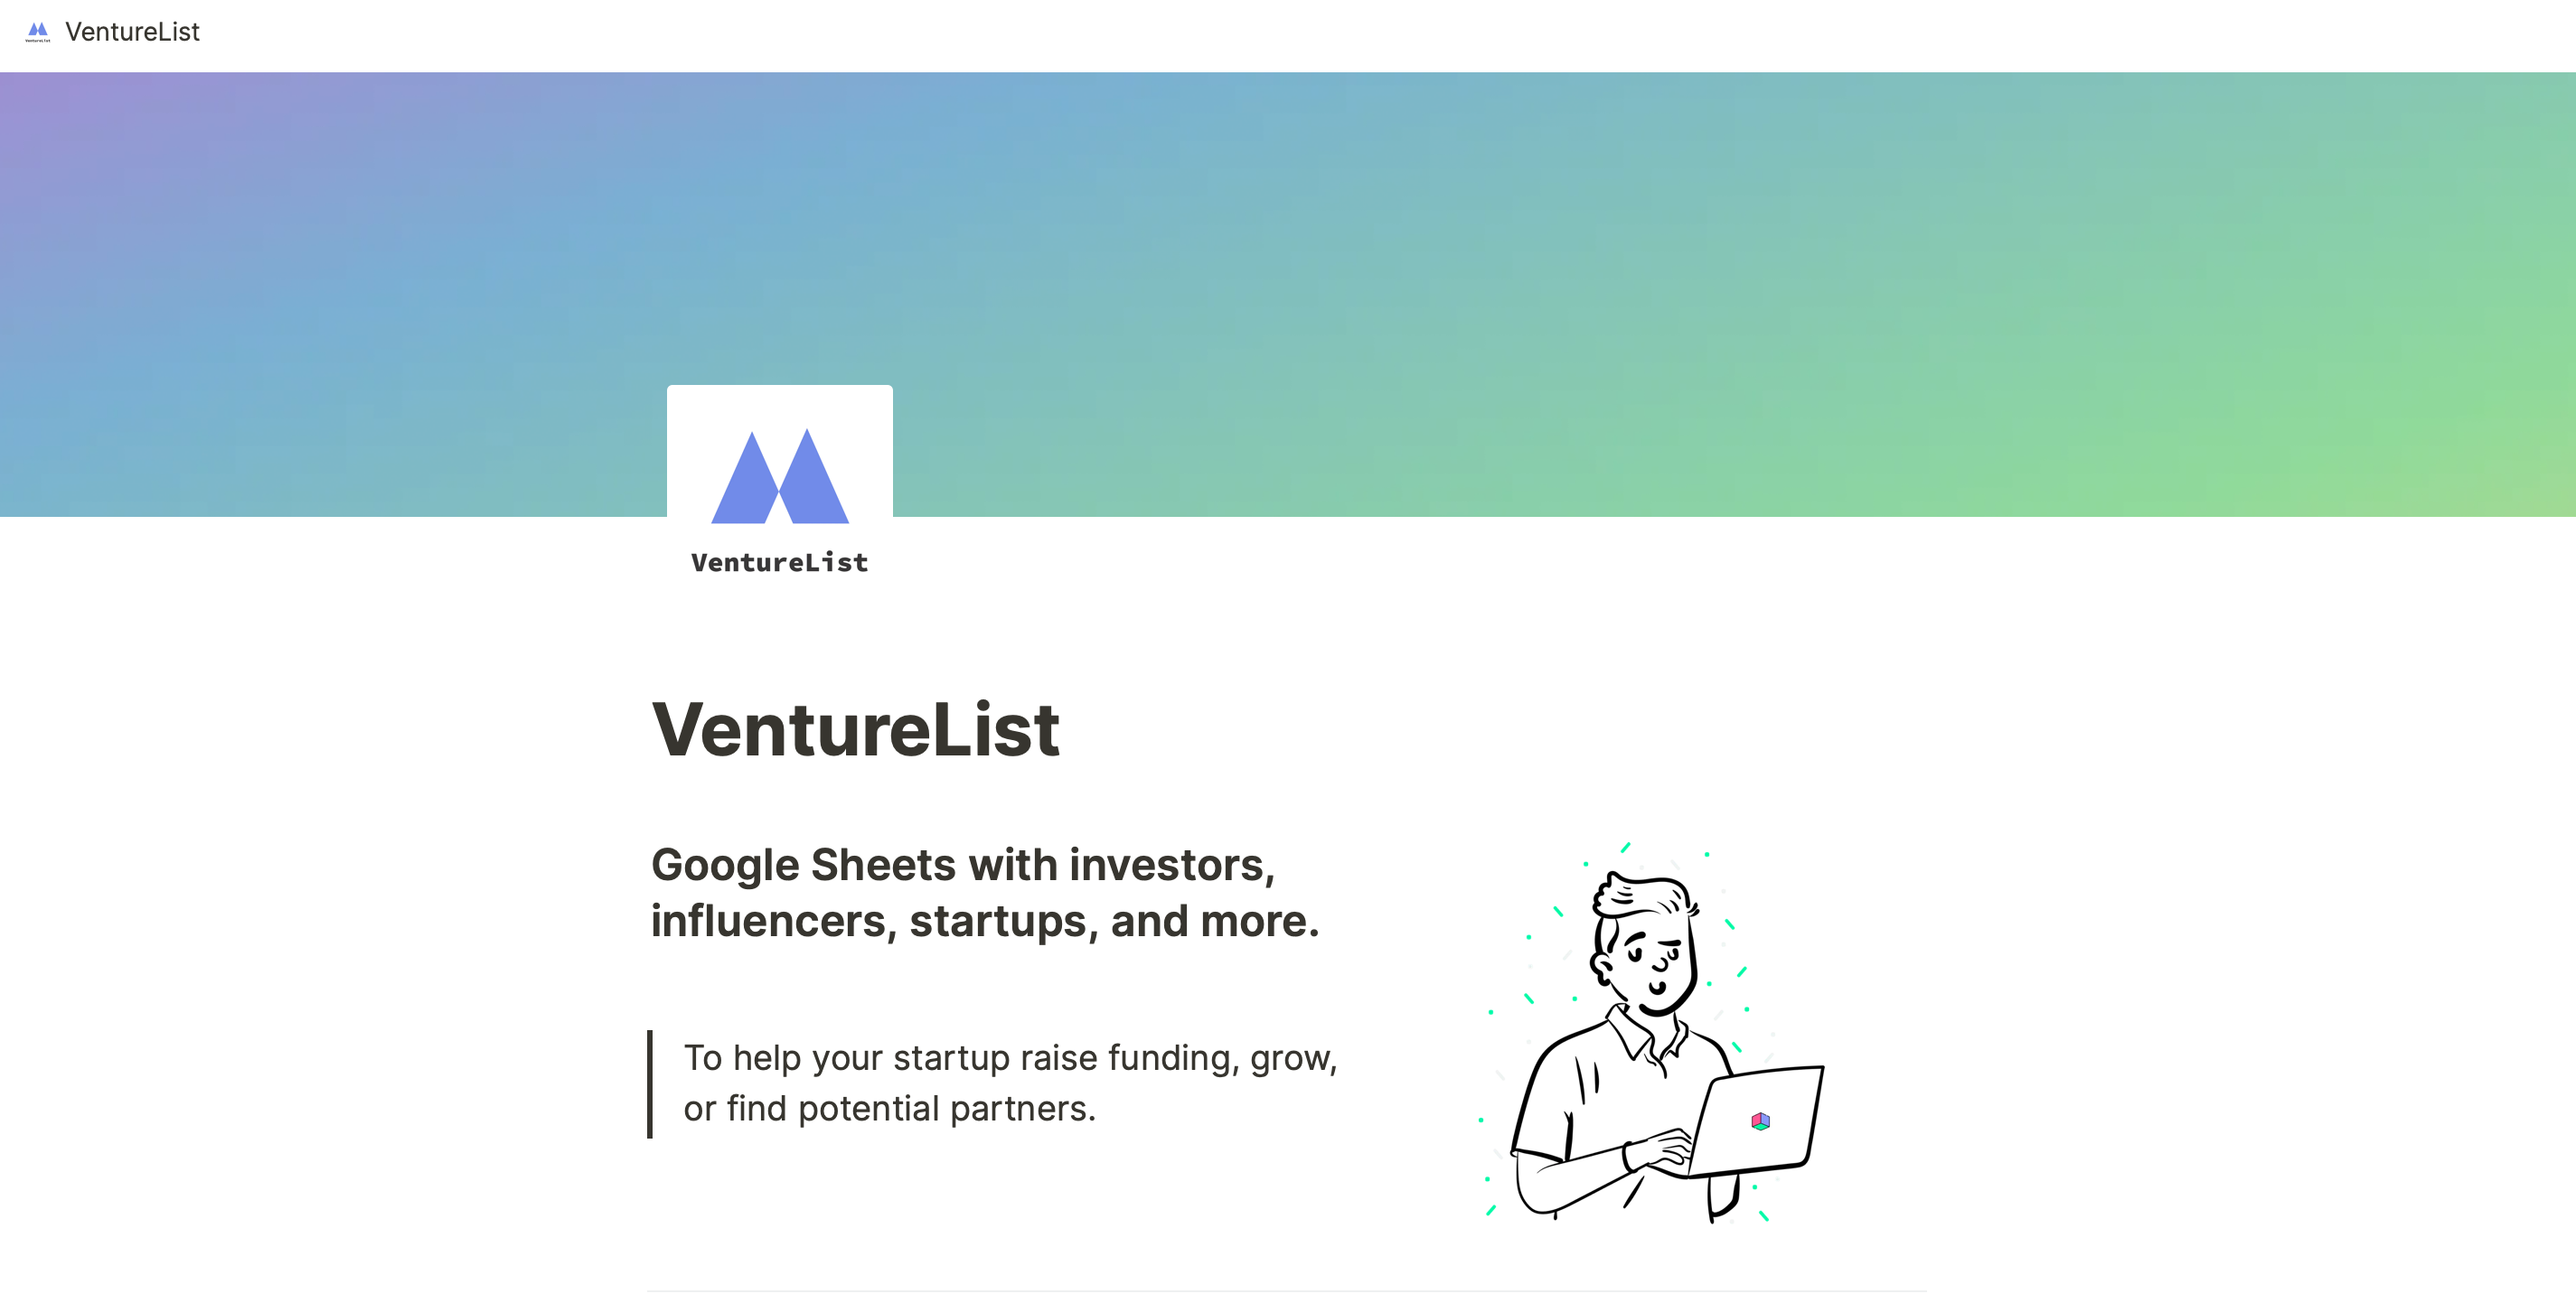 Google Sheets with investors, influencers, and startups